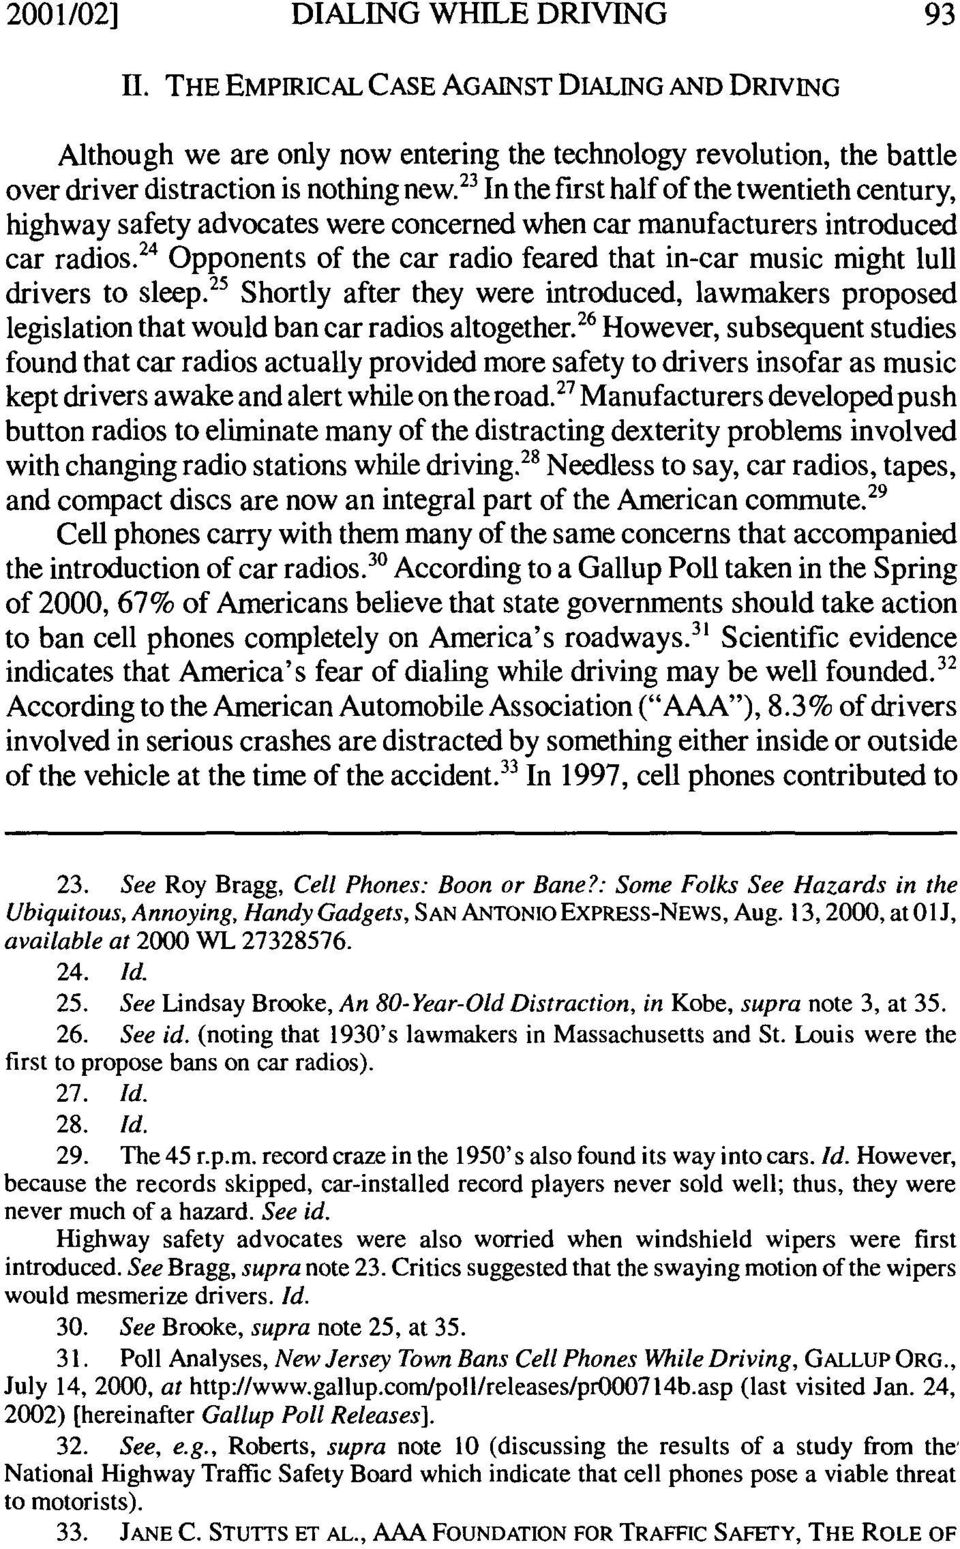 24 Opponents of the car radio feared that in-car music might lull drivers to sleep. Shortly after they were introduced, lawmakers proposed legislation that would ban car radios altogether.